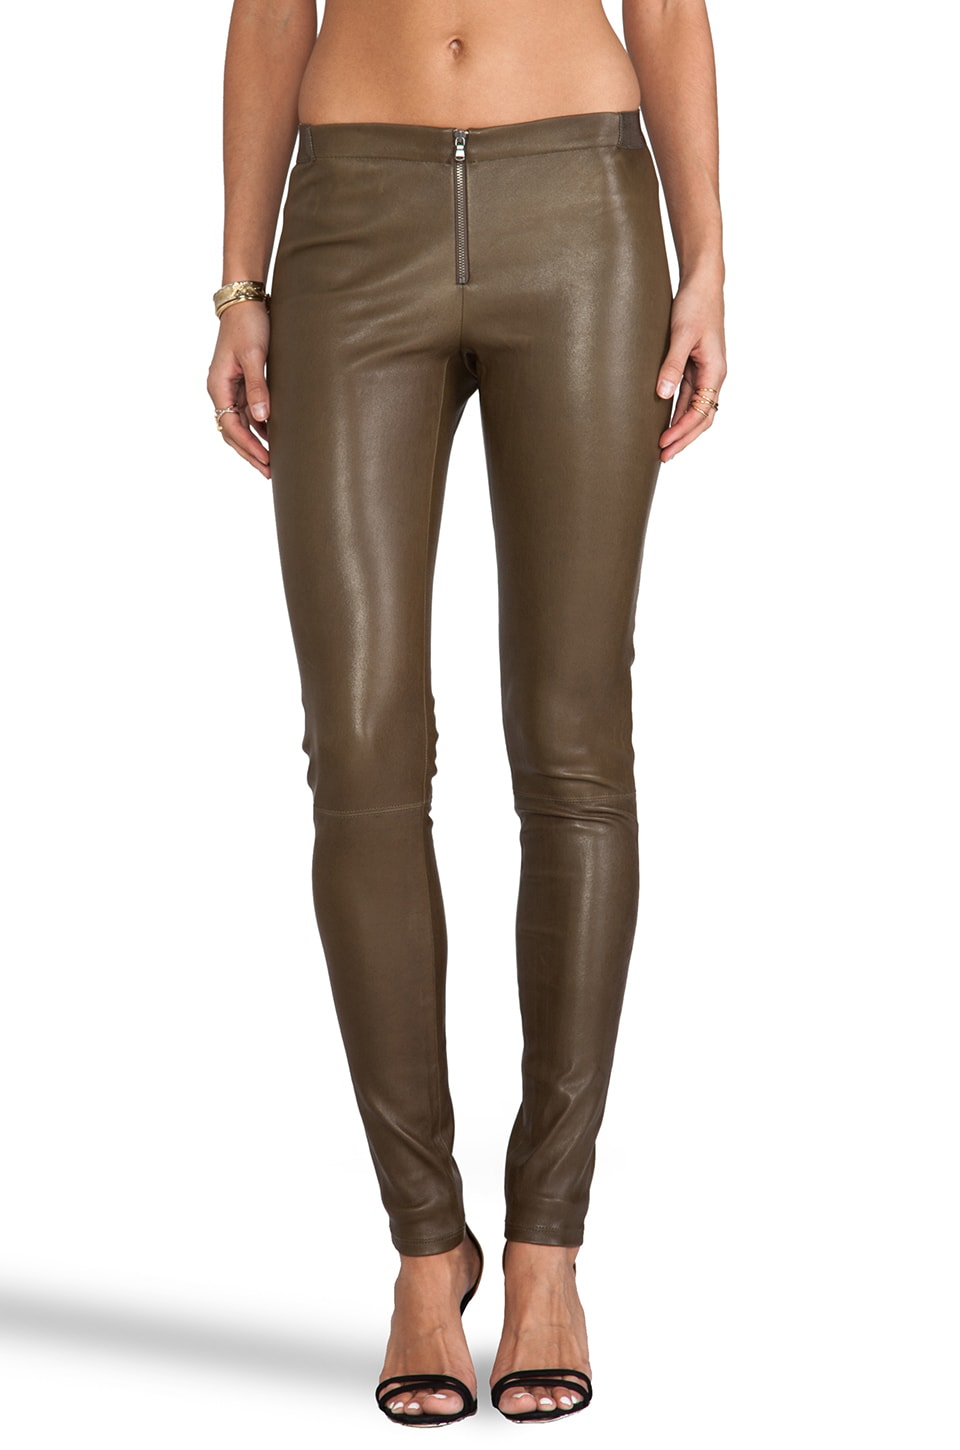 Alice + Olivia Front Zip Leather Legging in Olive